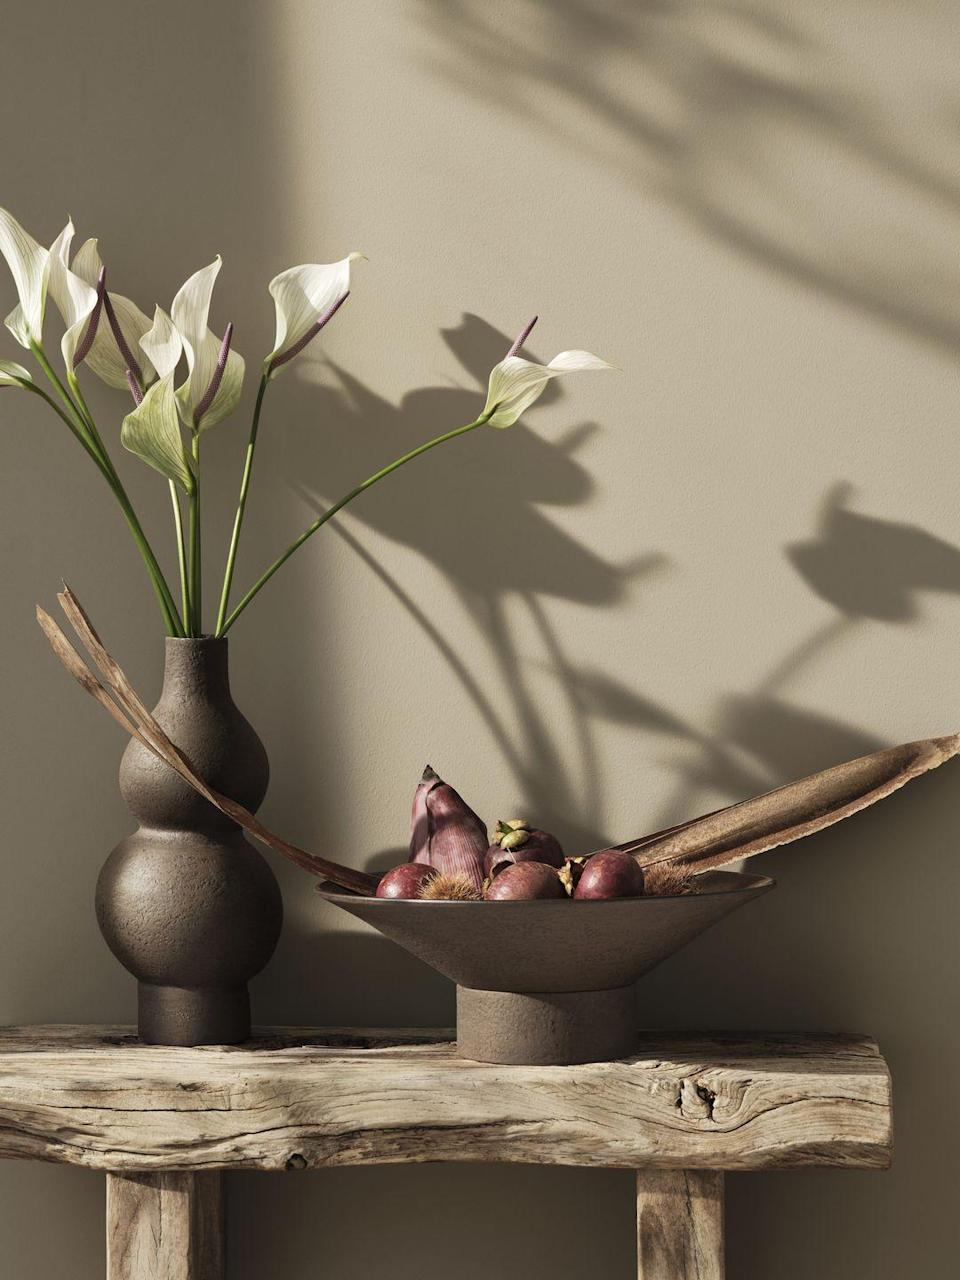 """<p>Whether you're on the hunt for a new fruit bowl or a standout vase, the artisan collection has something stylish for all. Make sure not to miss out. </p><p><a class=""""link rapid-noclick-resp"""" href=""""https://go.redirectingat.com?id=127X1599956&url=https%3A%2F%2Fwww2.hm.com%2Fen_gb%2Fhome.html&sref=https%3A%2F%2Fwww.housebeautiful.com%2Fuk%2Flifestyle%2Fshopping%2Fg36671419%2Fhandm-home-love-of-craft-collection-artisans%2F"""" rel=""""nofollow noopener"""" target=""""_blank"""" data-ylk=""""slk:COMING SOON"""">COMING SOON</a></p>"""